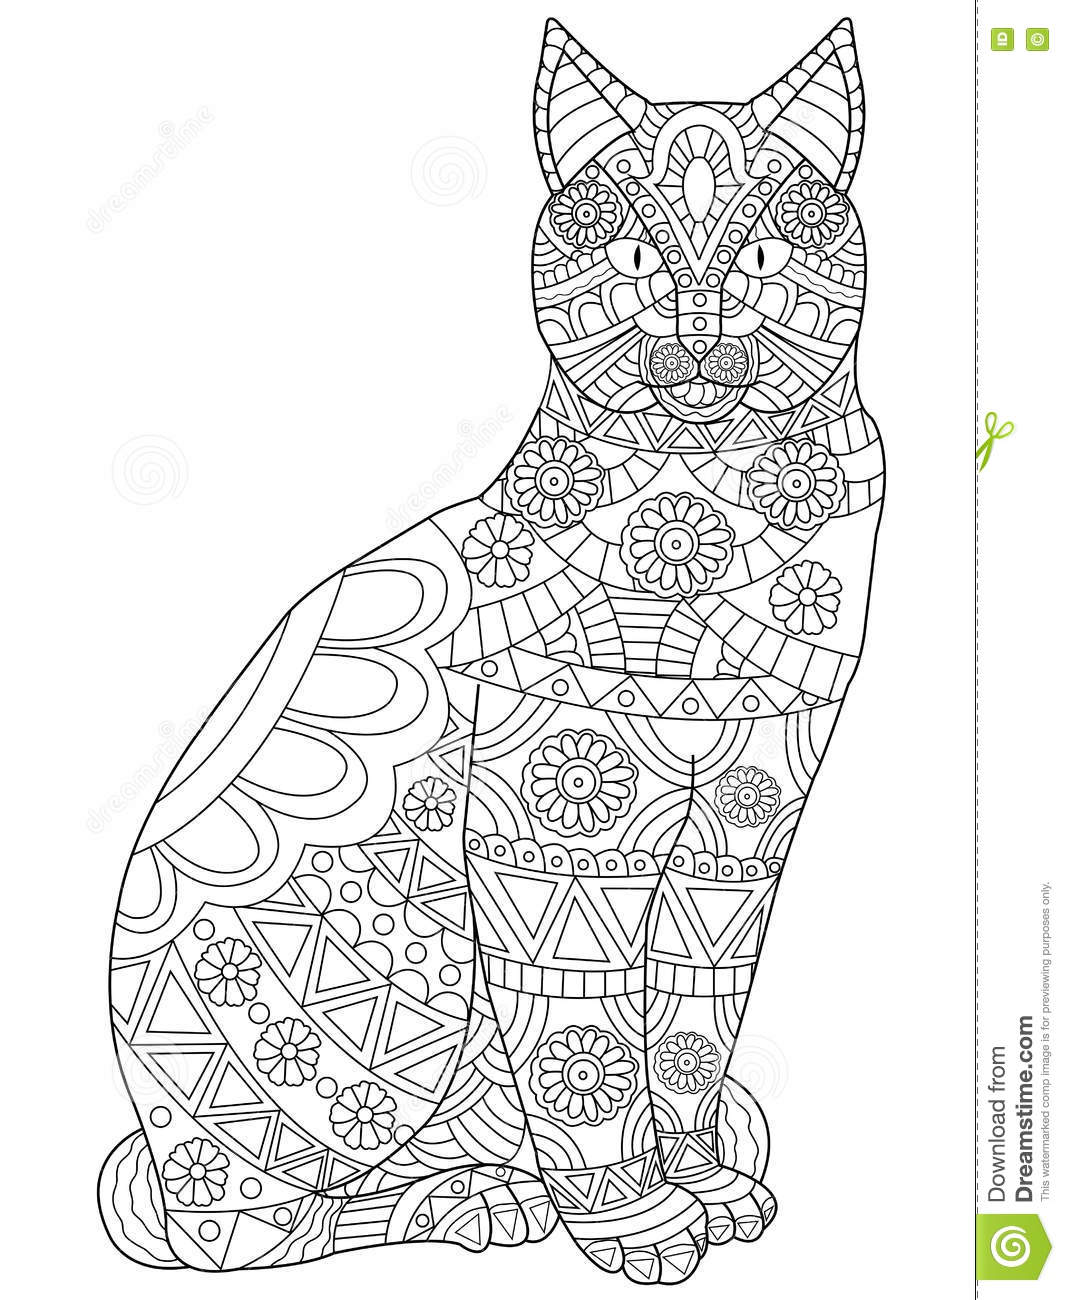 Cat Coloring Vector For Adults Stock Vector - Illustration ...